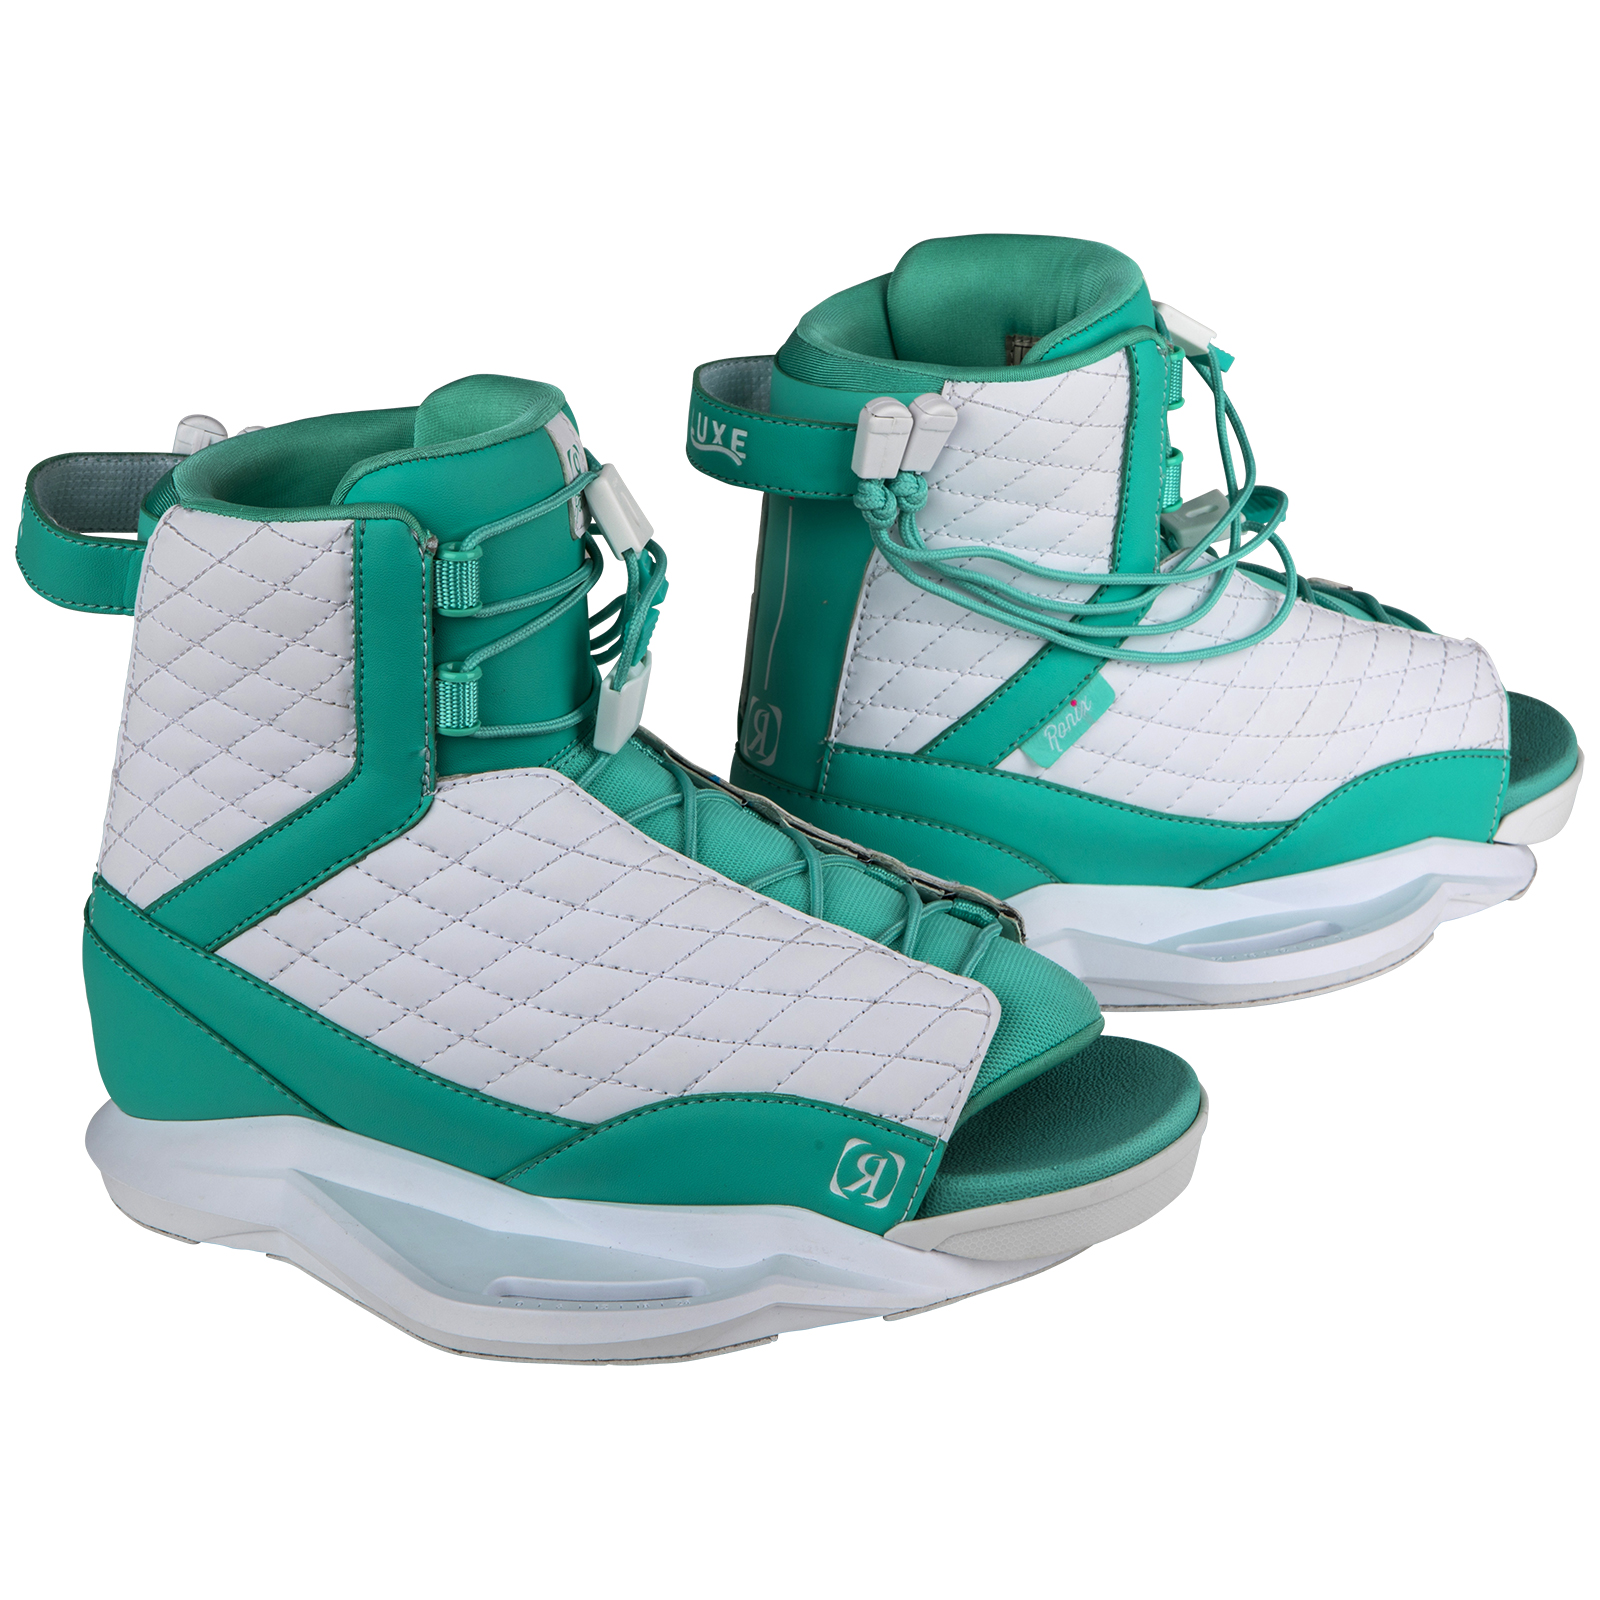 LUXE - WHITE / TURQUOISE BOOT RONIX 2019